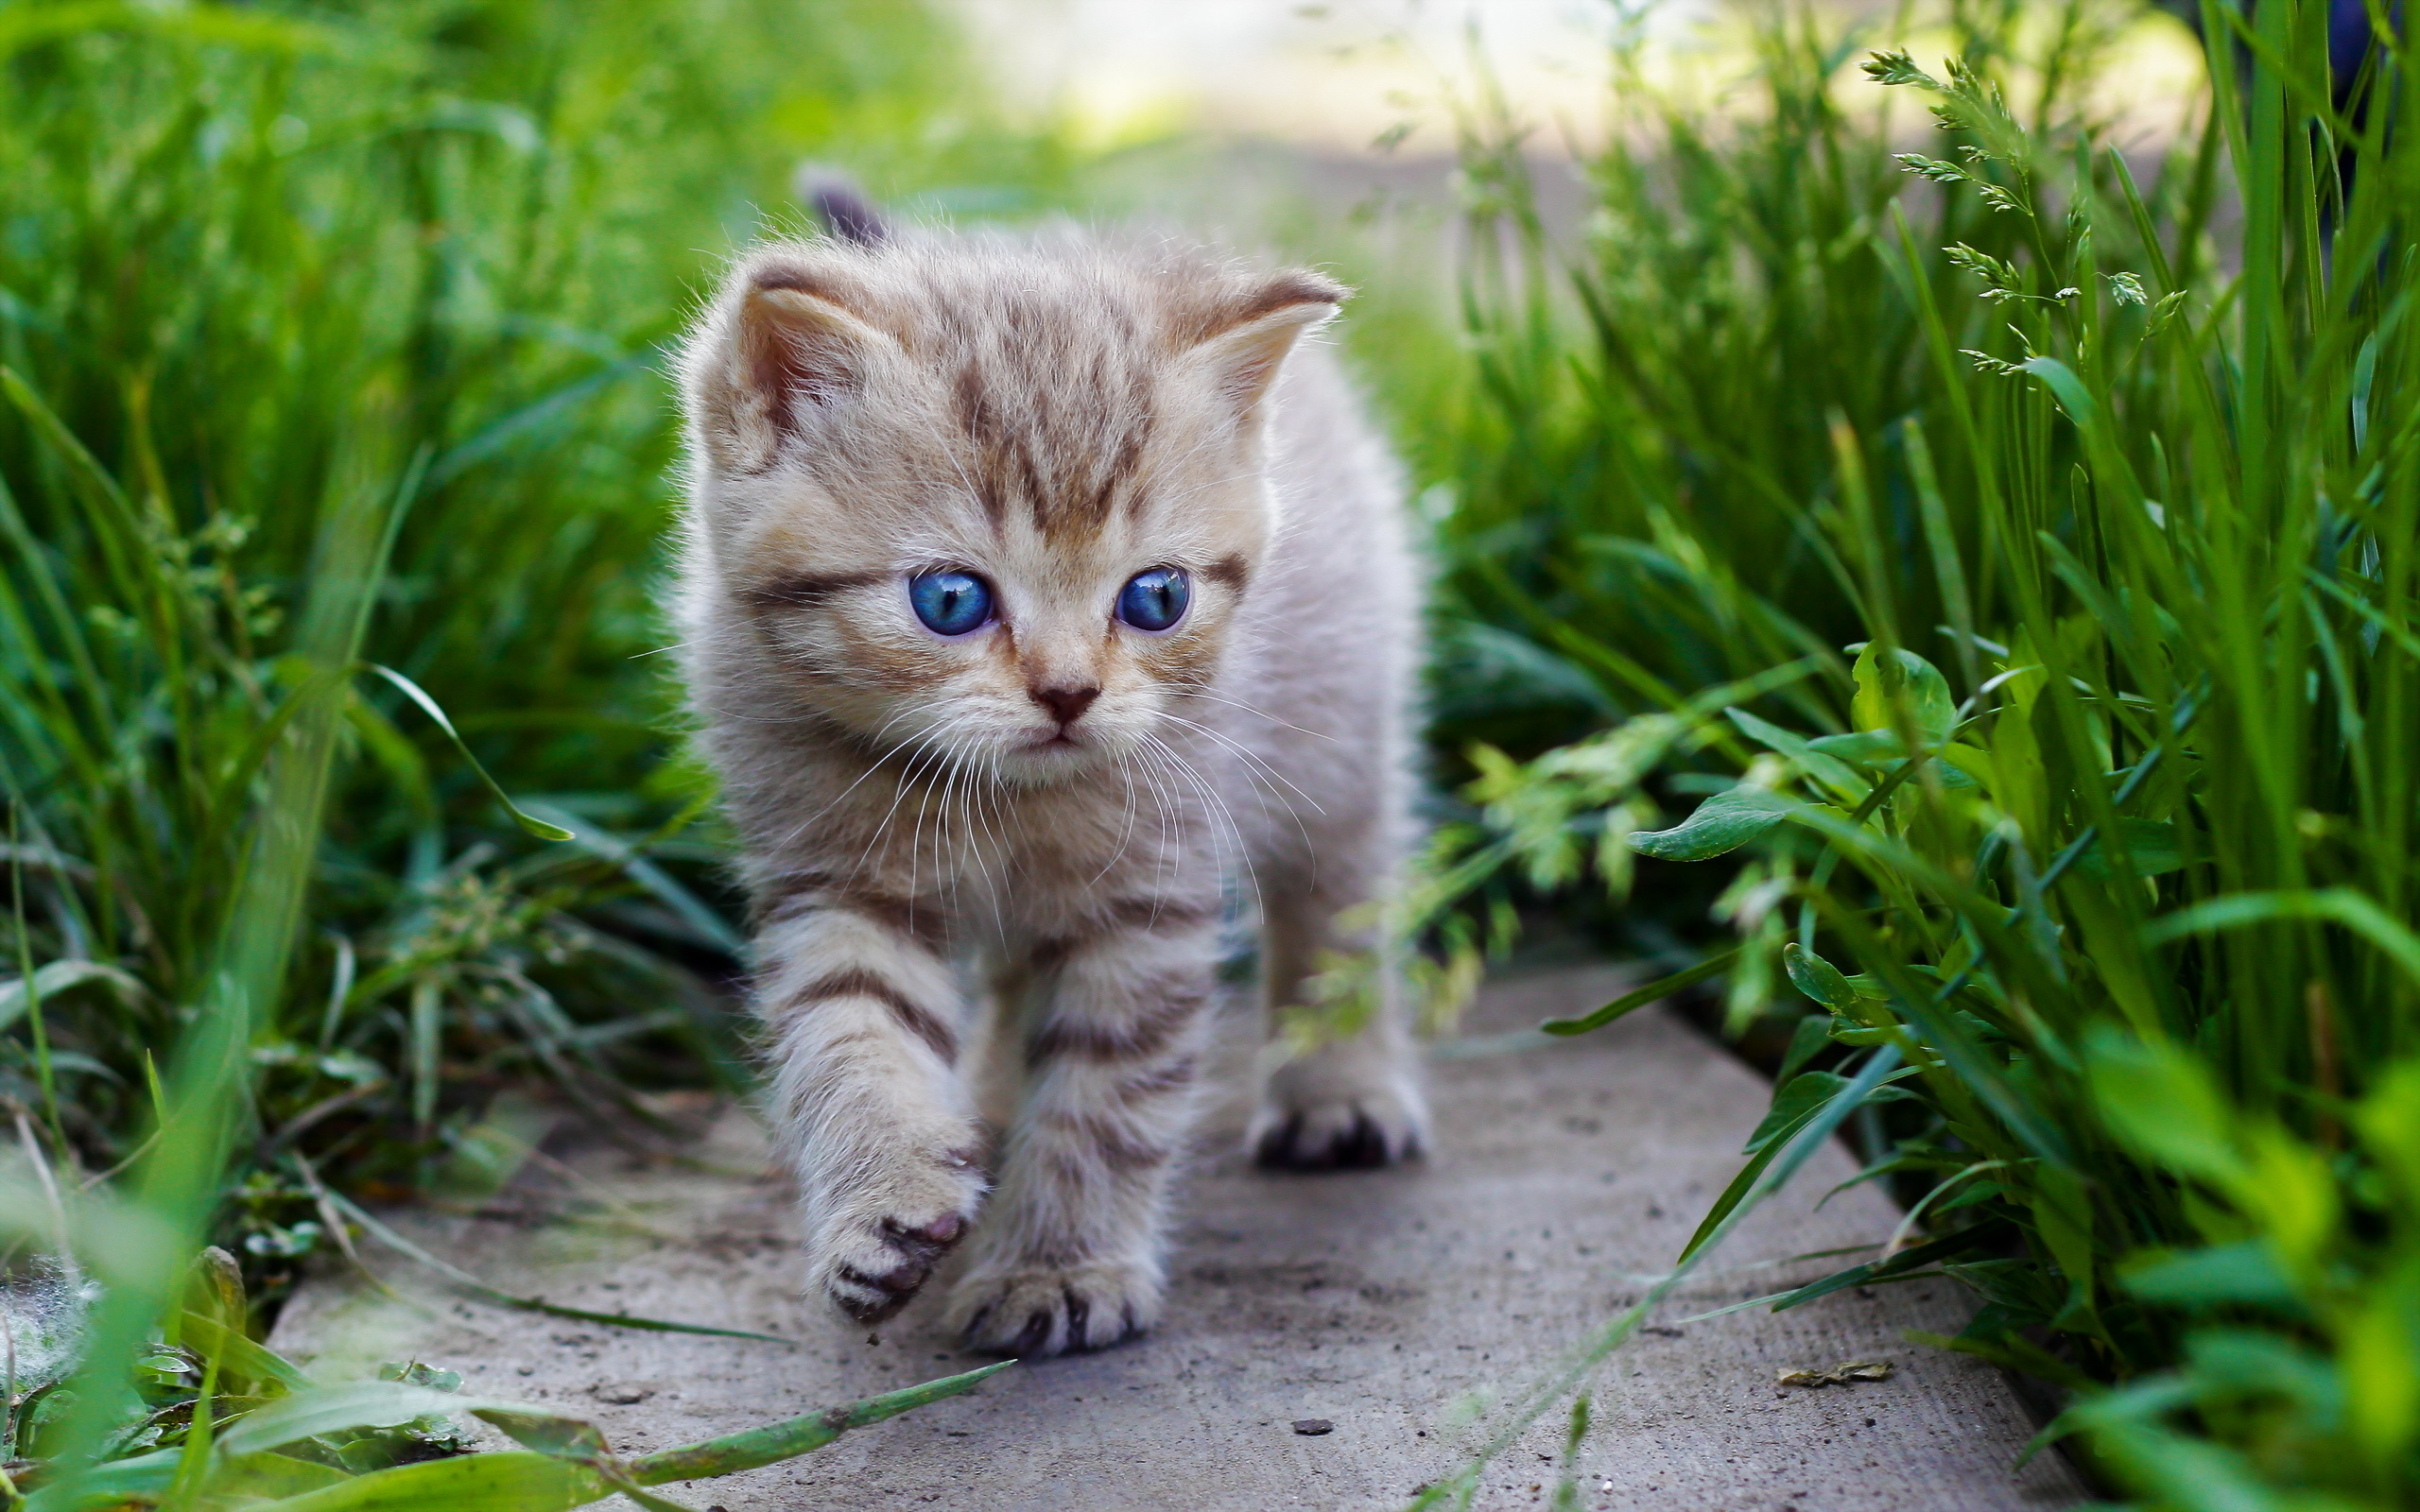 Cute Baby Kittens wallpaper | 2560x1600 | #45951